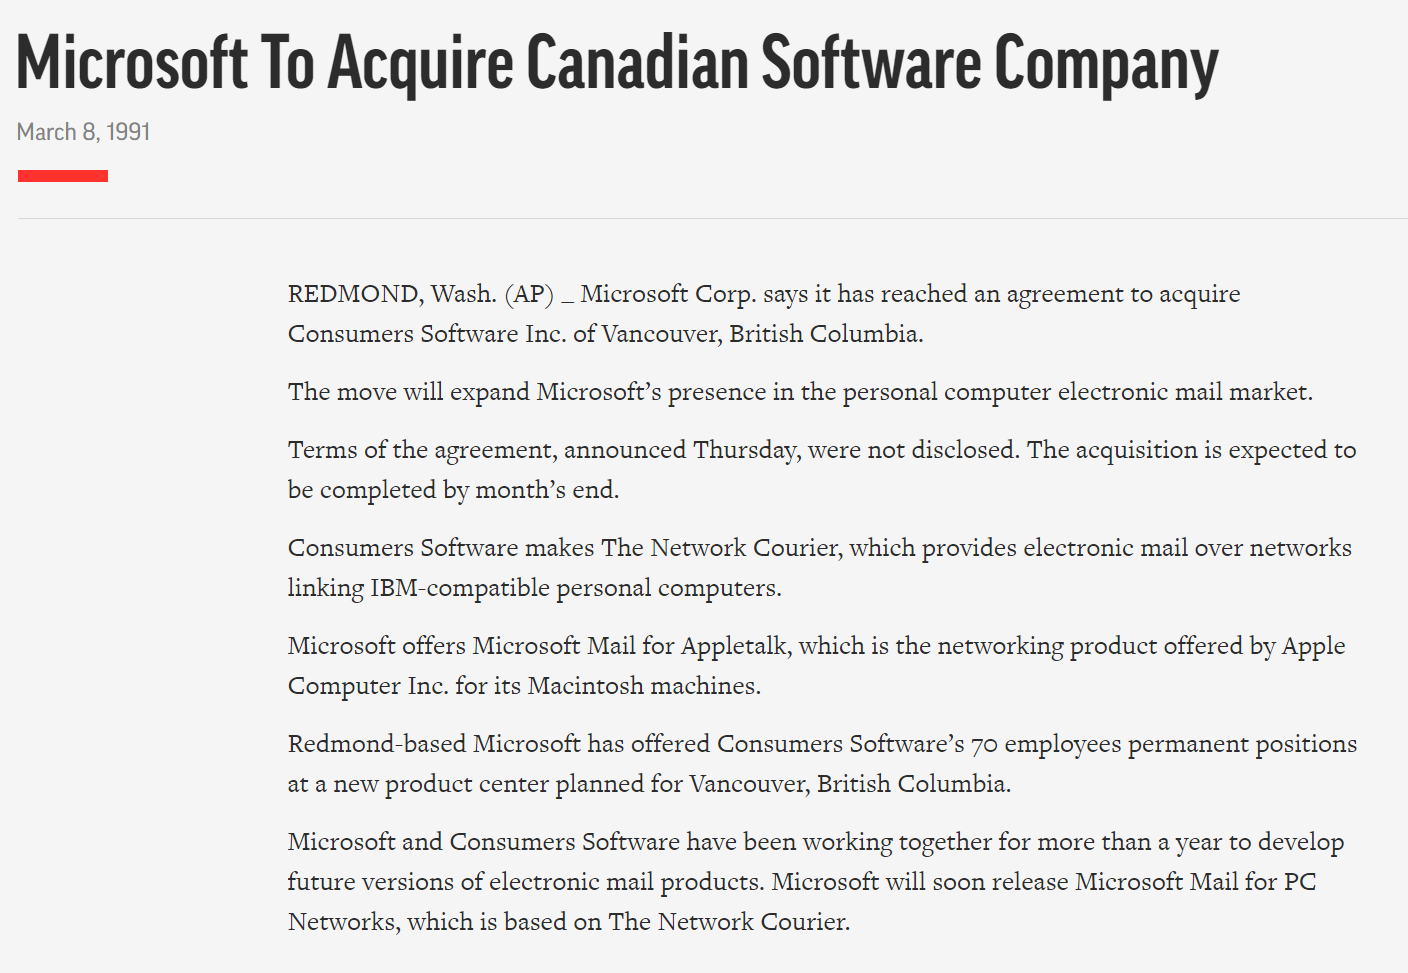 Microsoft to acquire Canadian Software Company - Network Courier